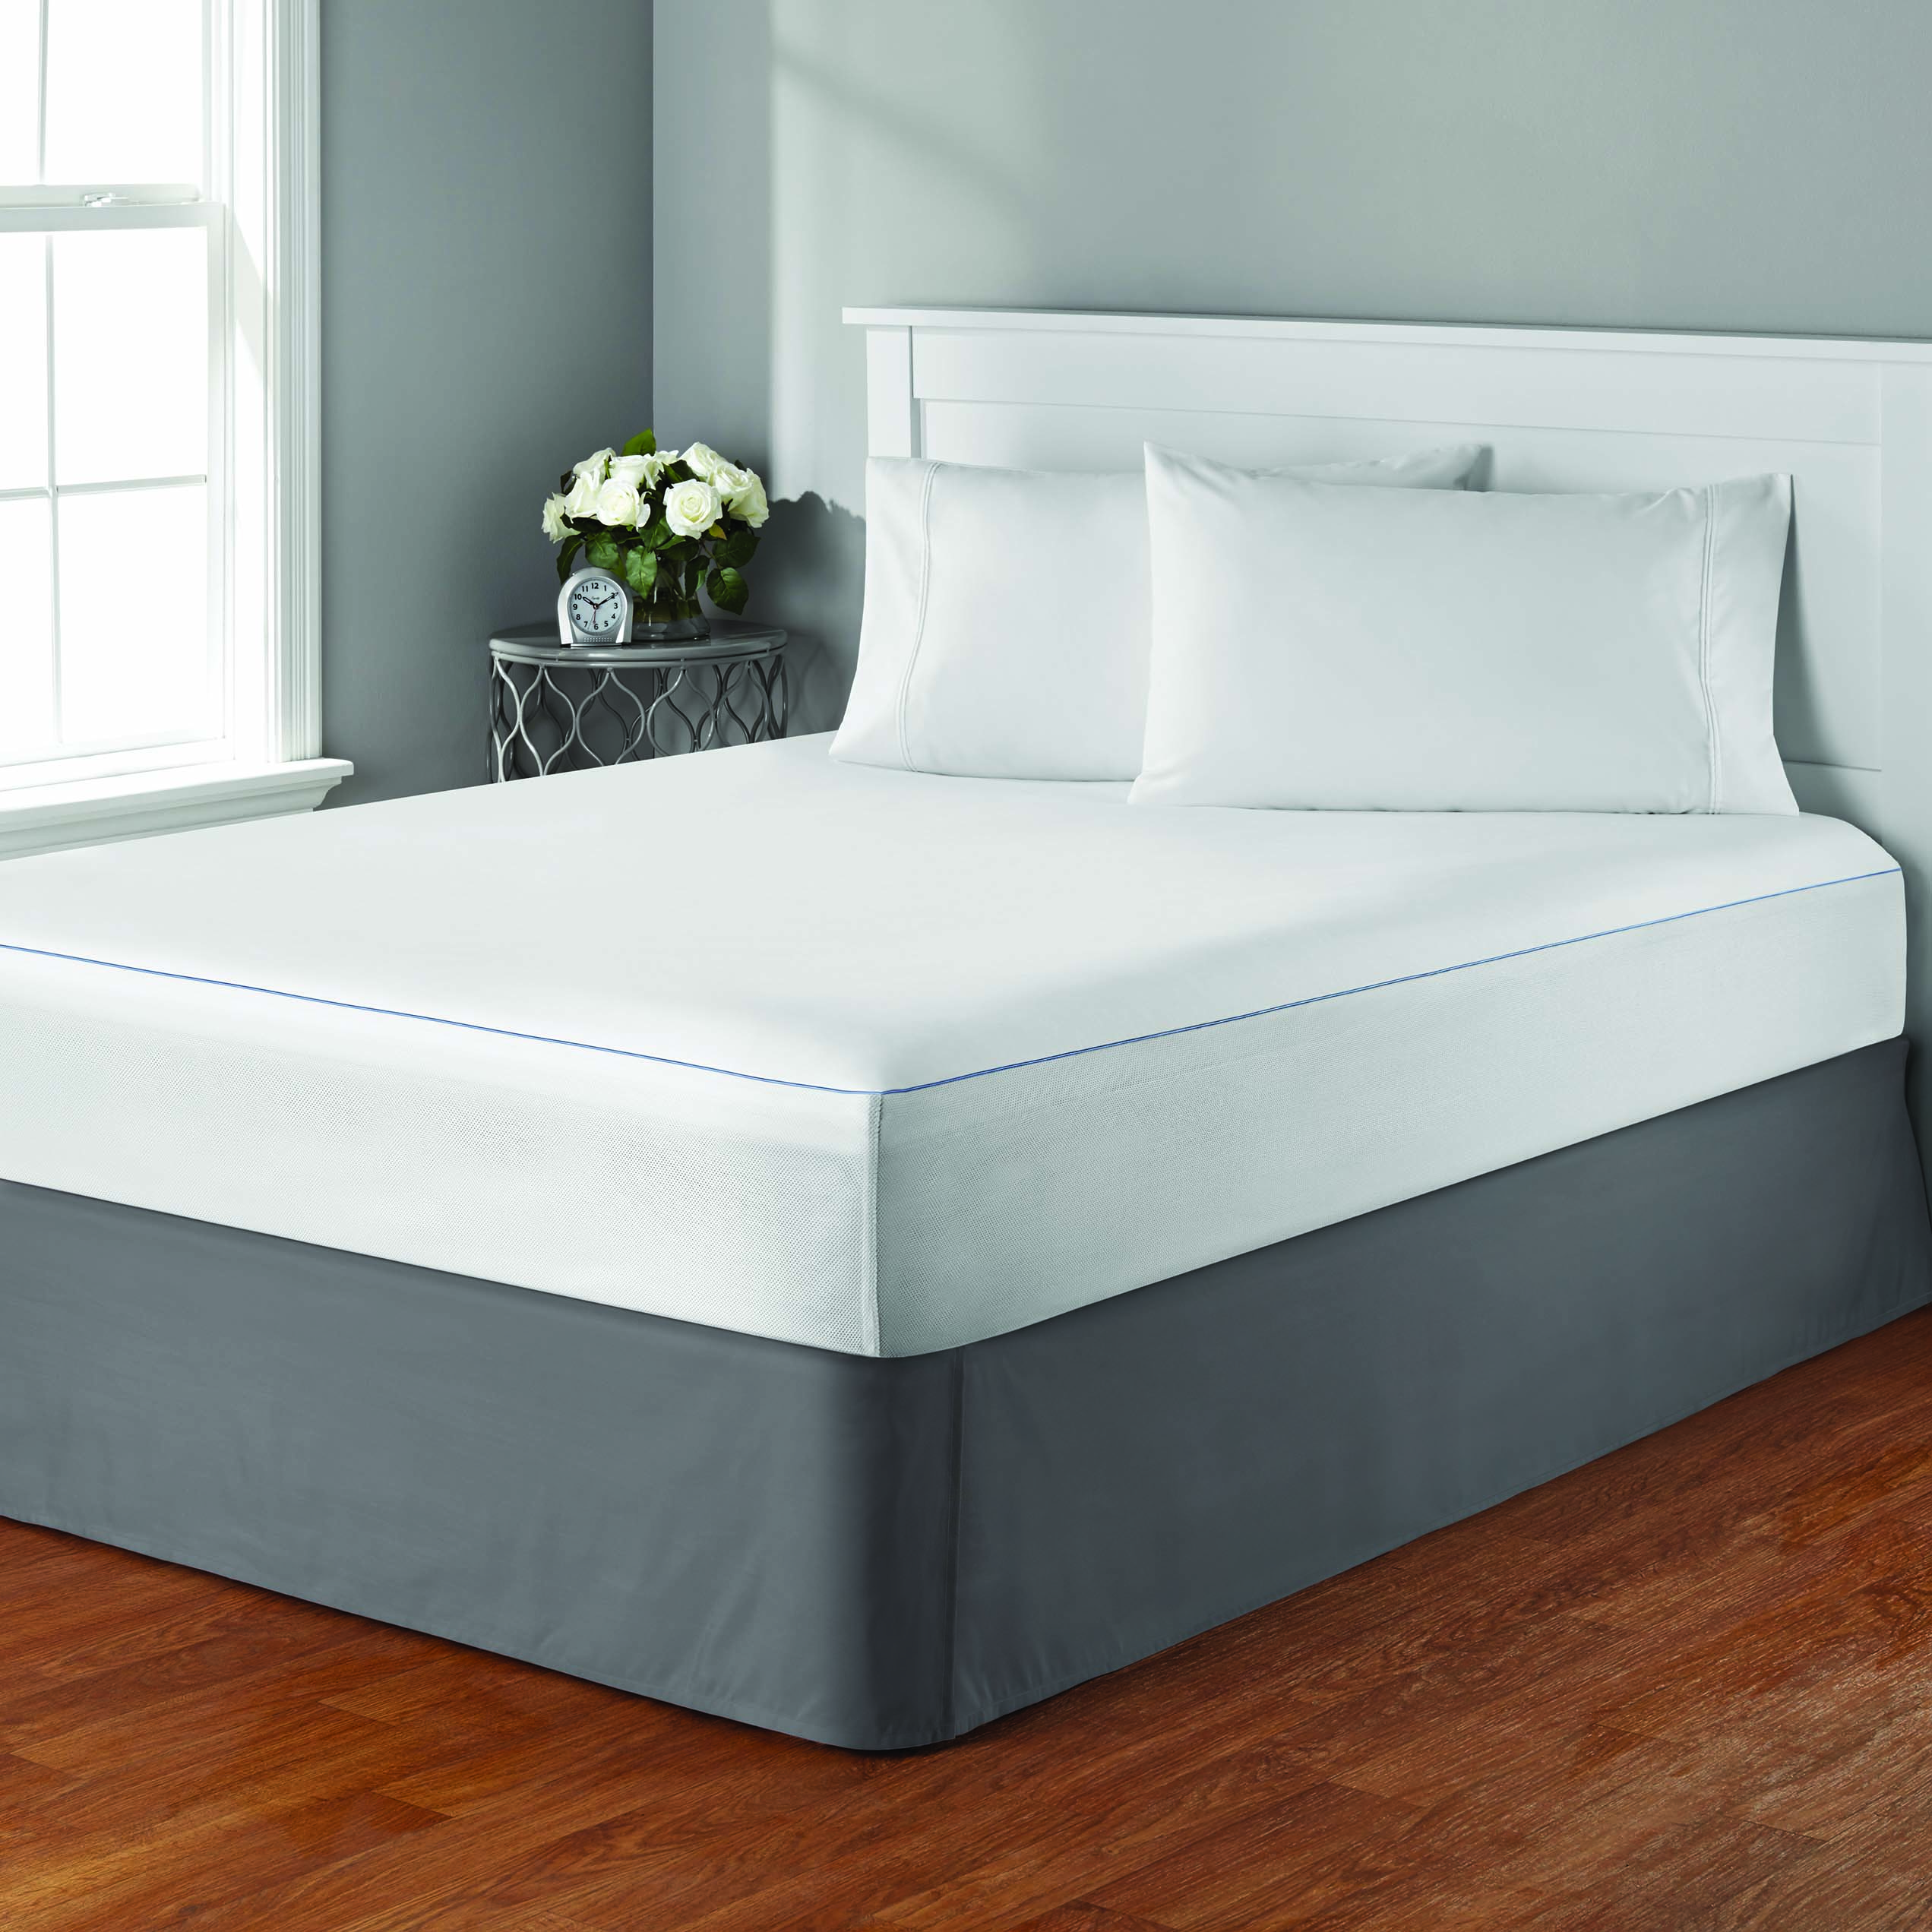 Mainstays Cooling Comfort Luxury Fitted Waterproof ...